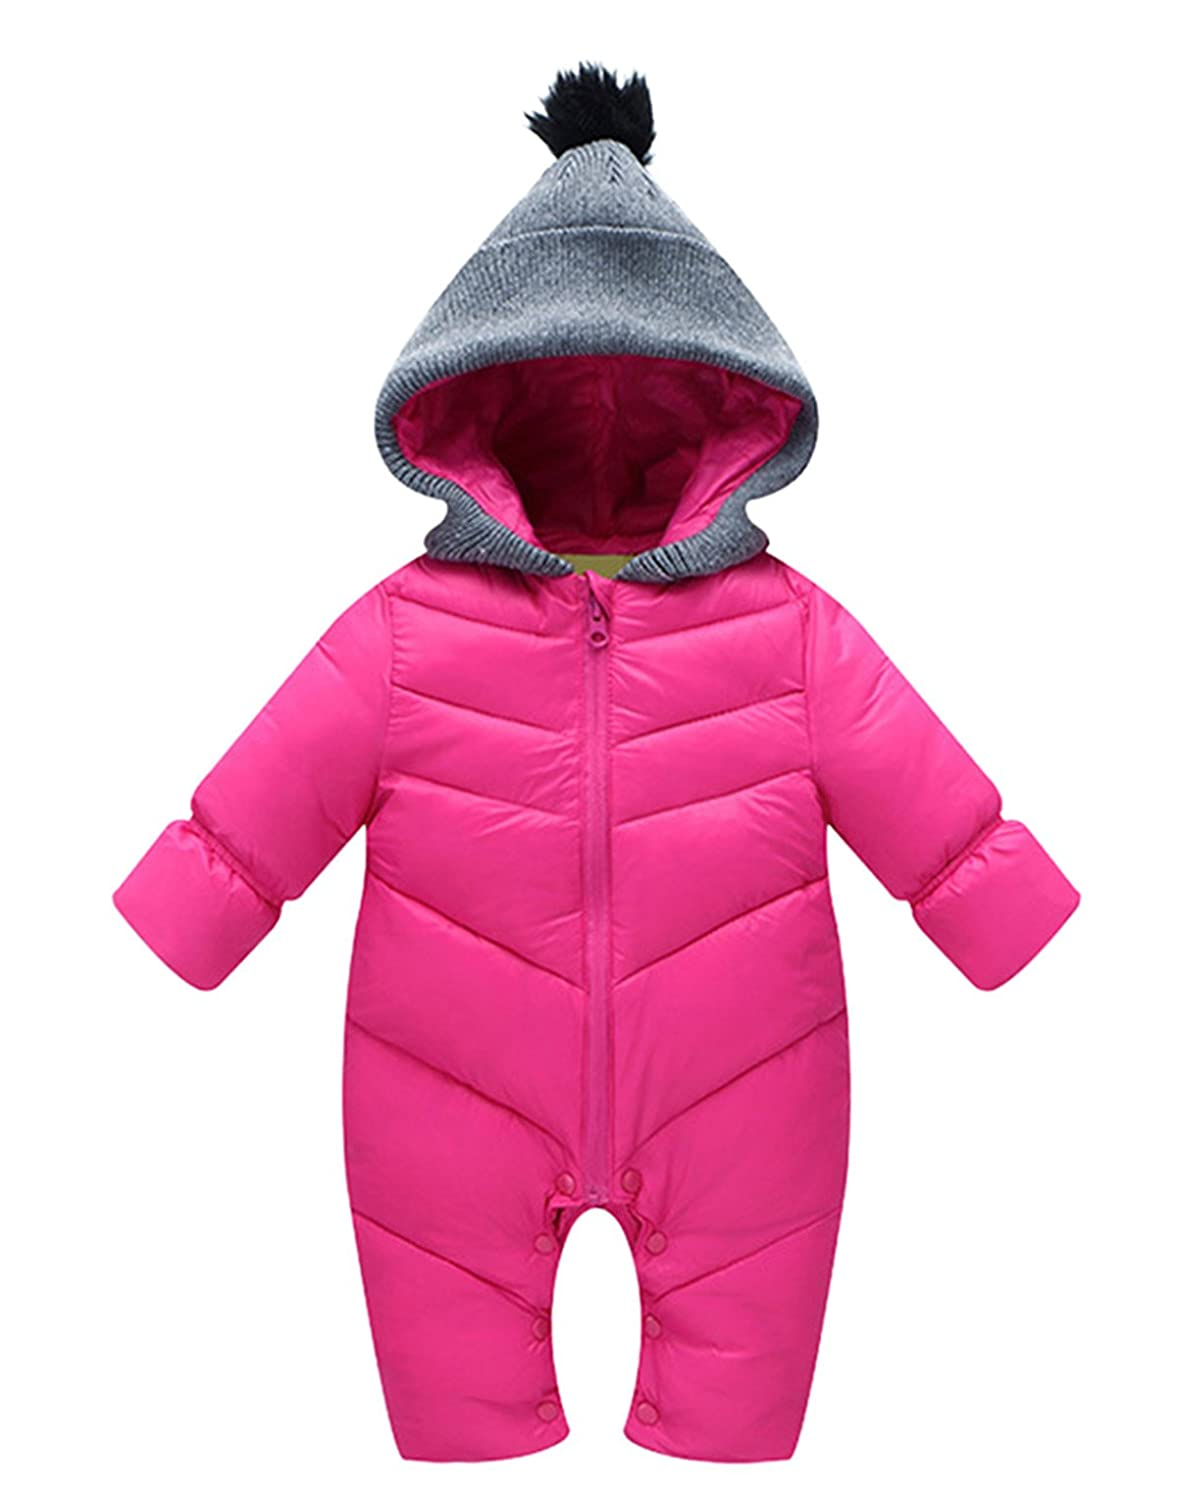 Unisex Baby Winter Snowsuit Zipped Hooded Thick Jumpsuit Romper One Piece